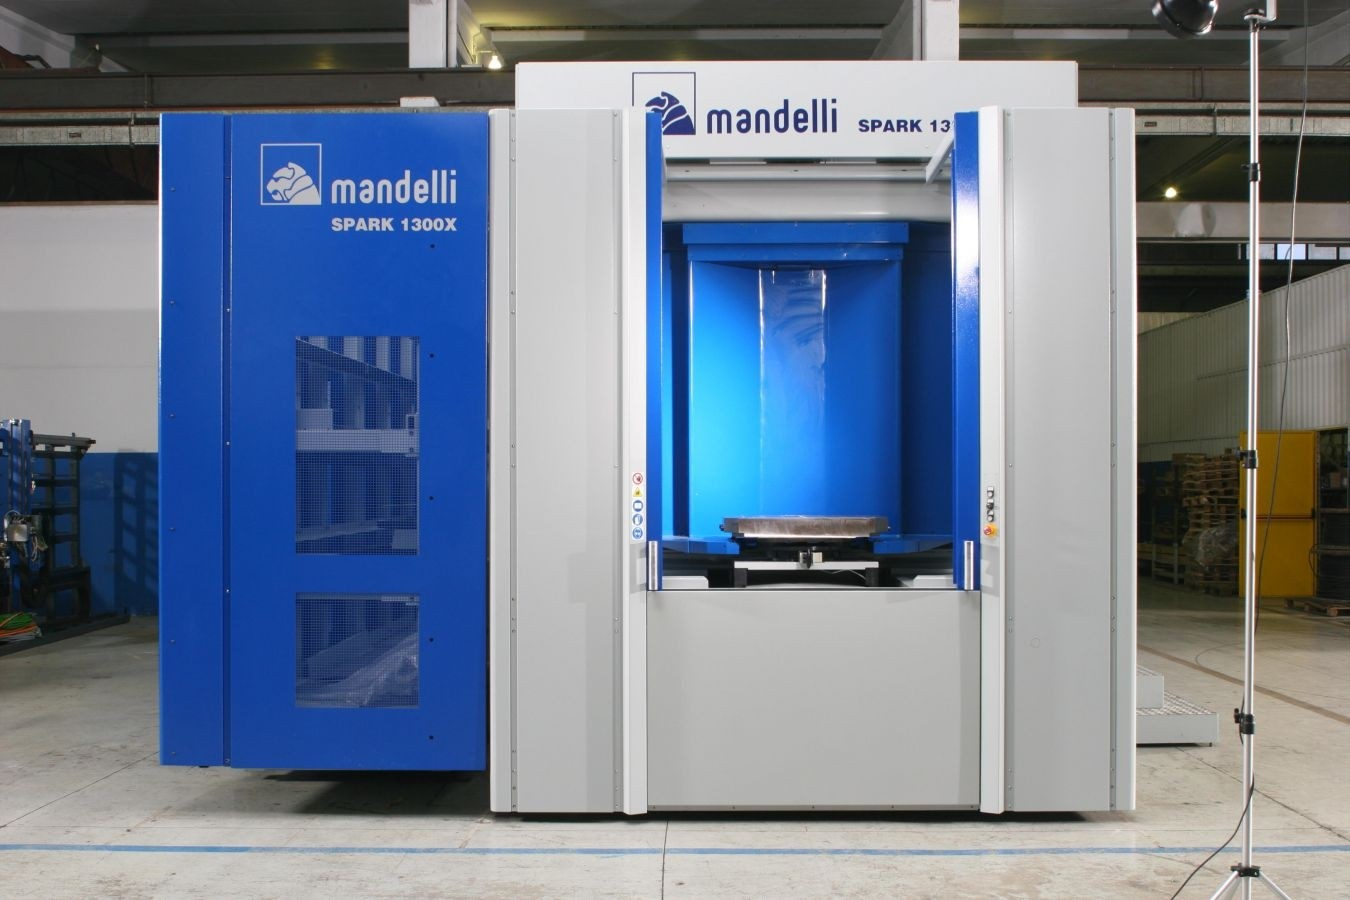 Mandelli Spark X 2100 CNC Horizontal Machining Center